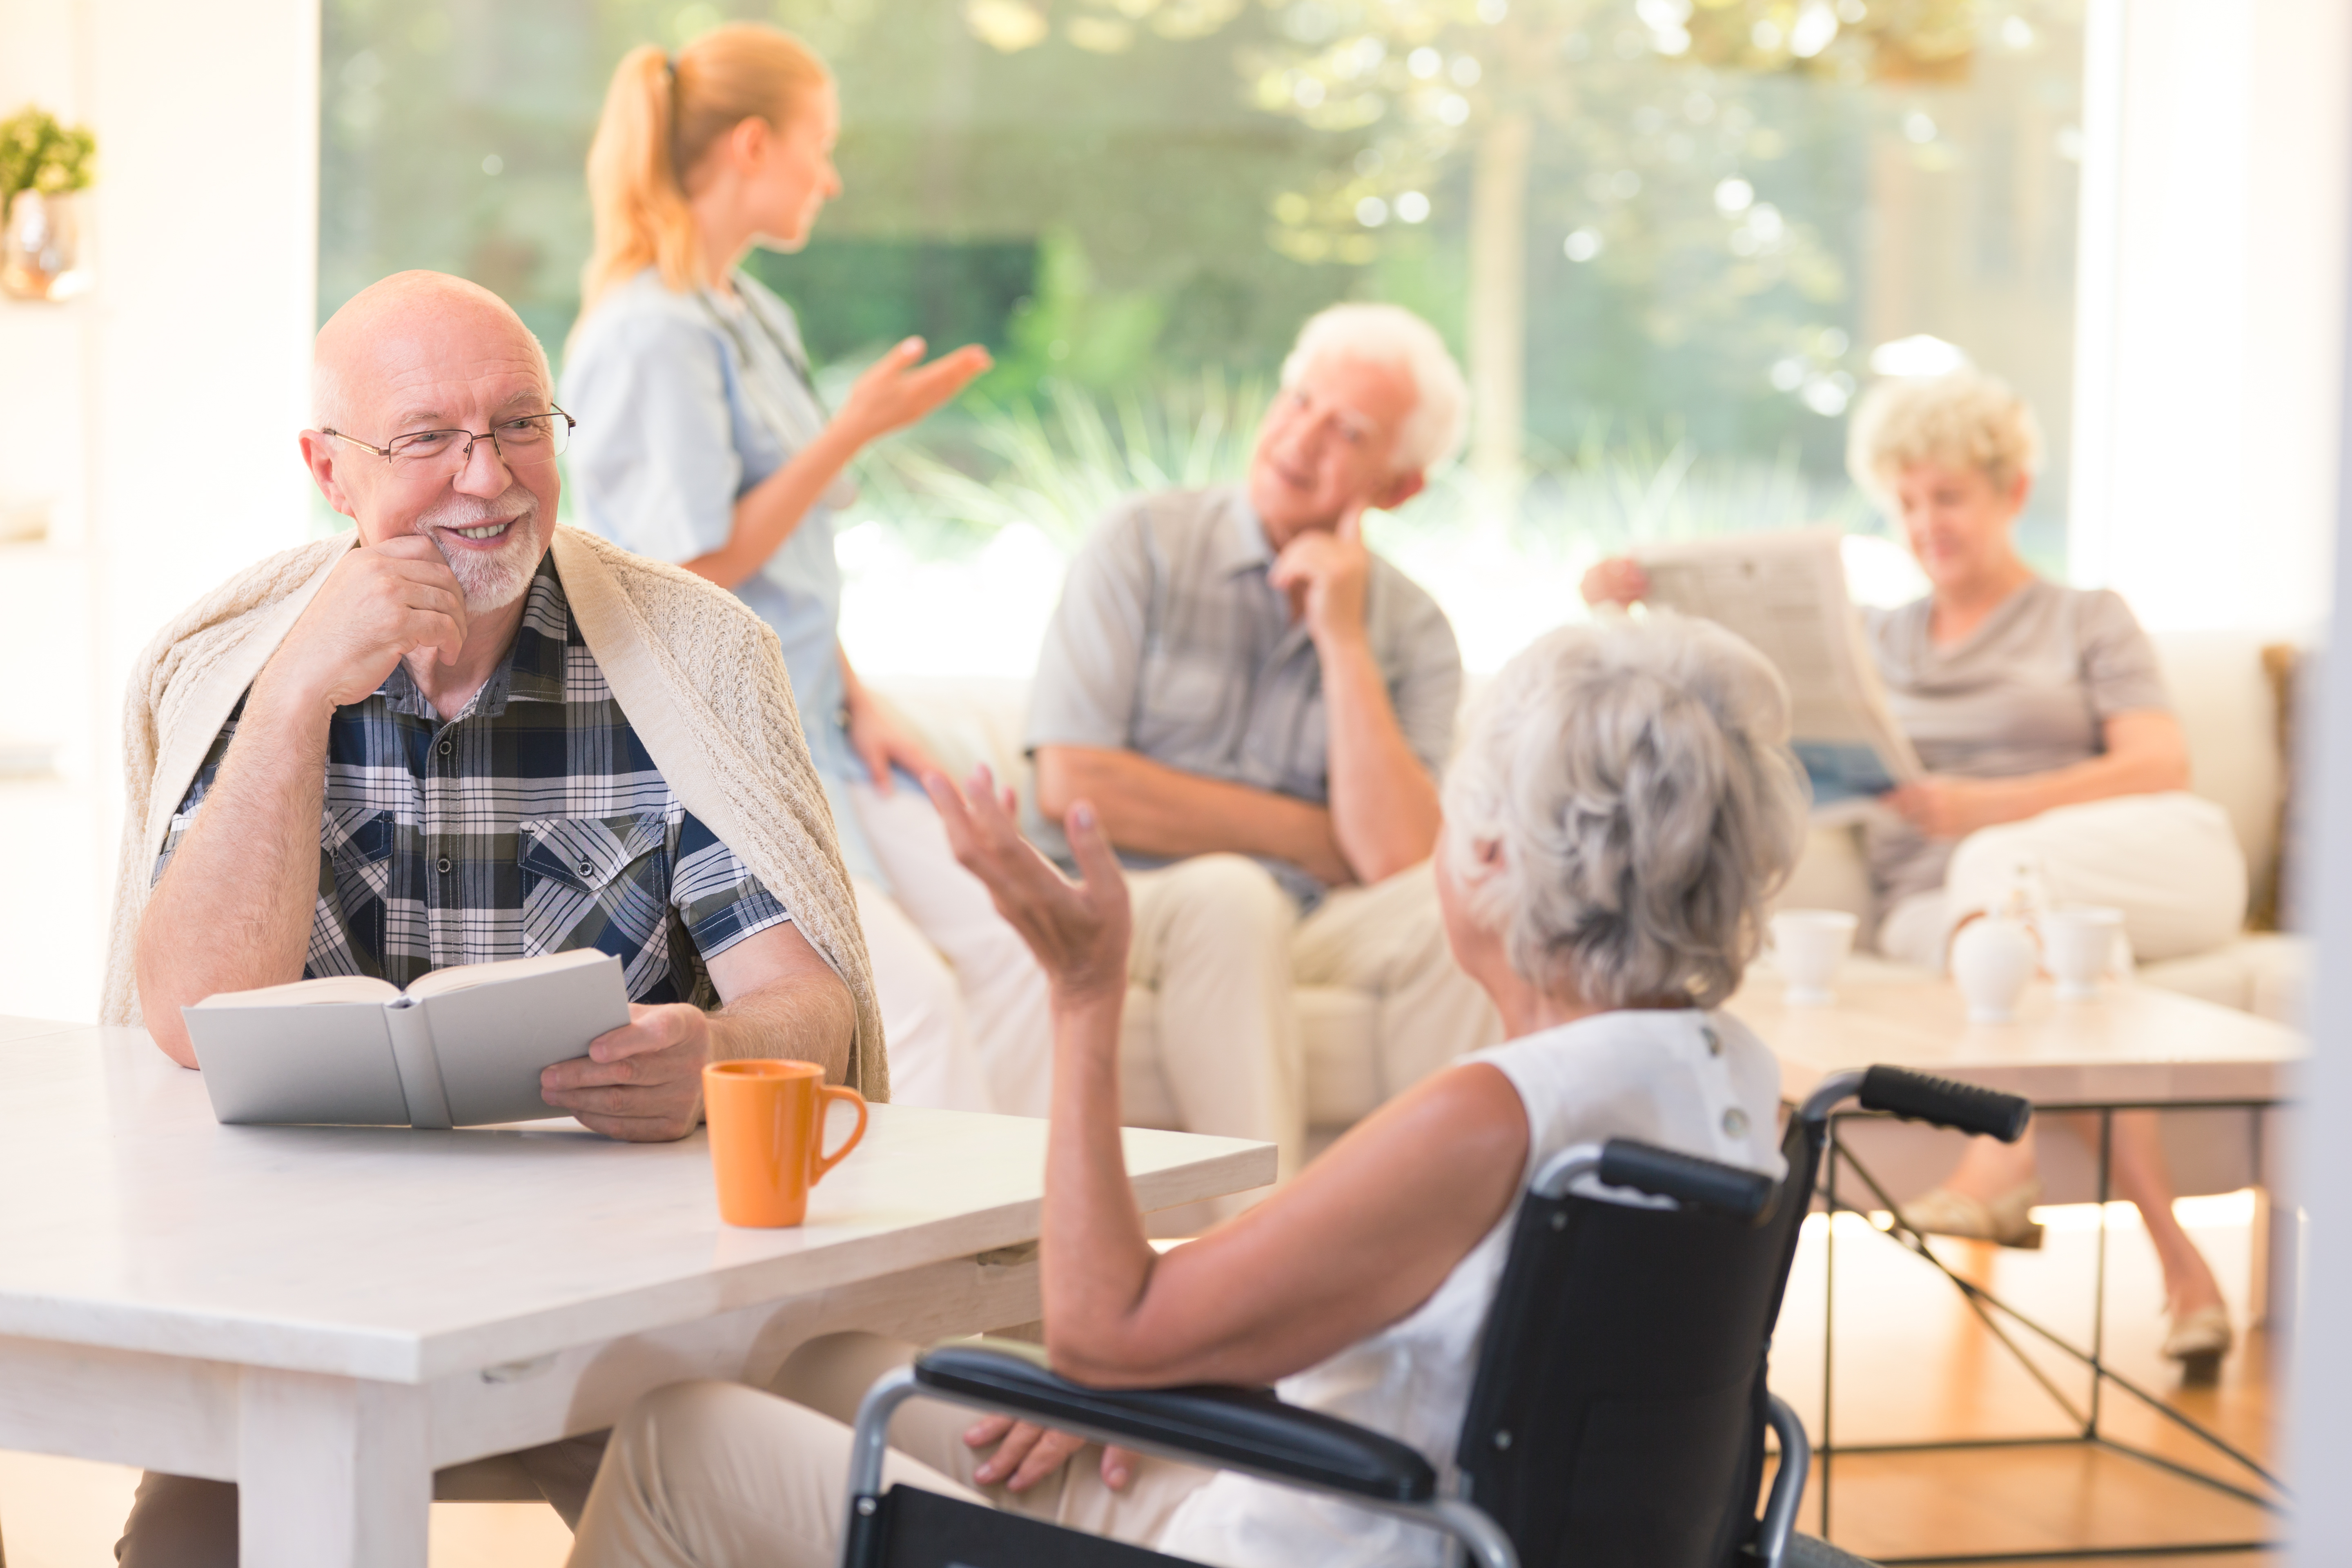 2018.12.04 Stock Photo Inside Retirement Home Happy elderly people being social and having a conversation 001